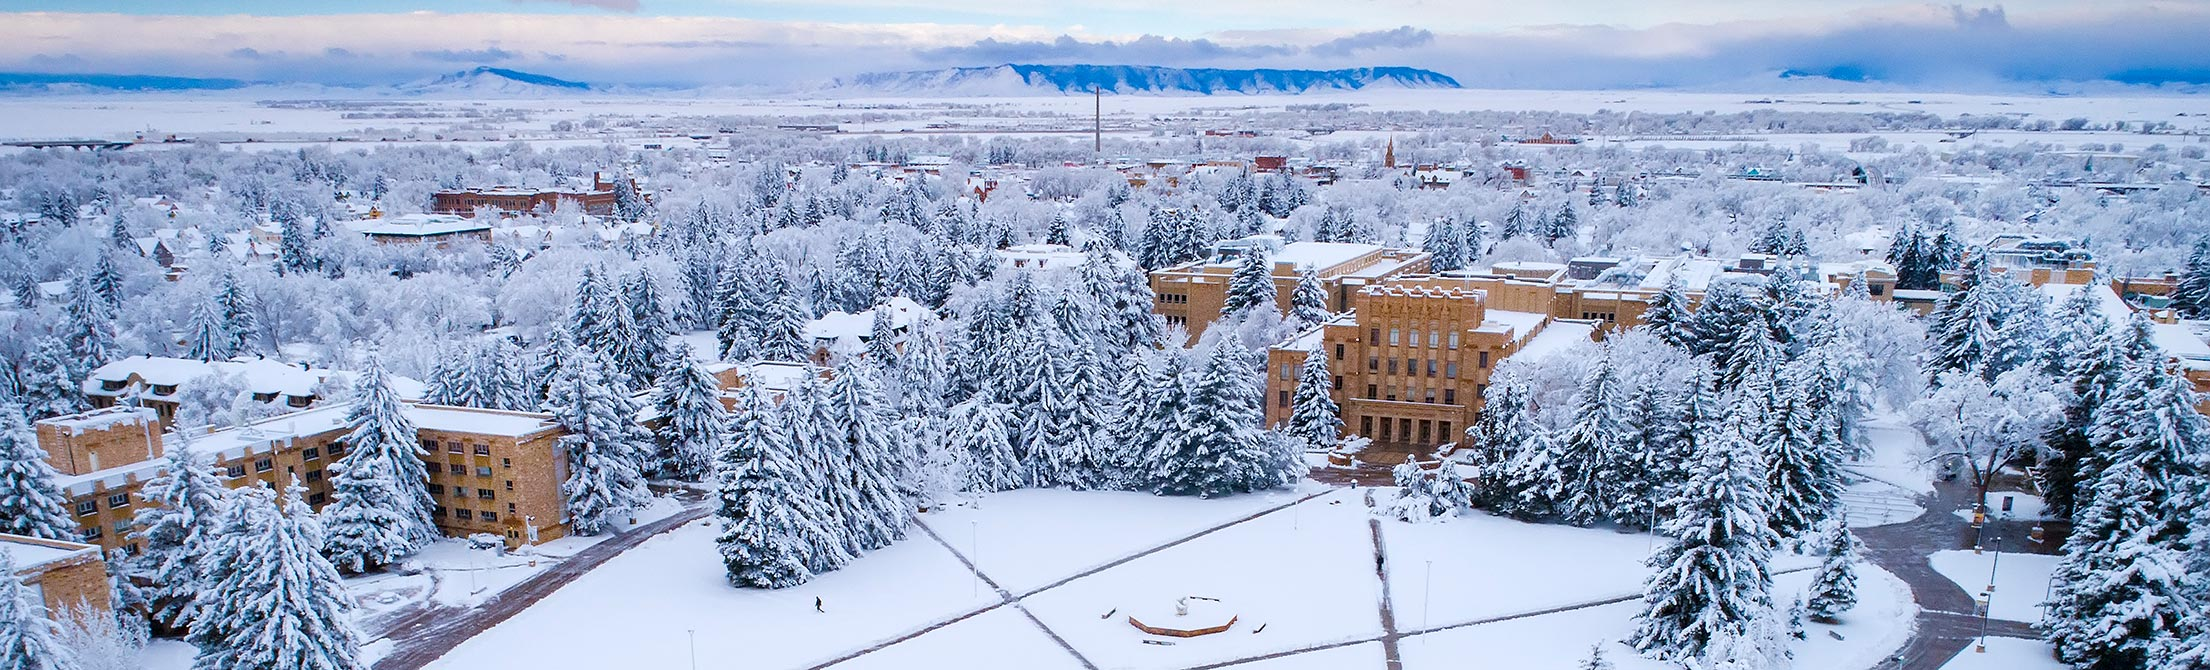 UW campus in the winter from an aerial photo.